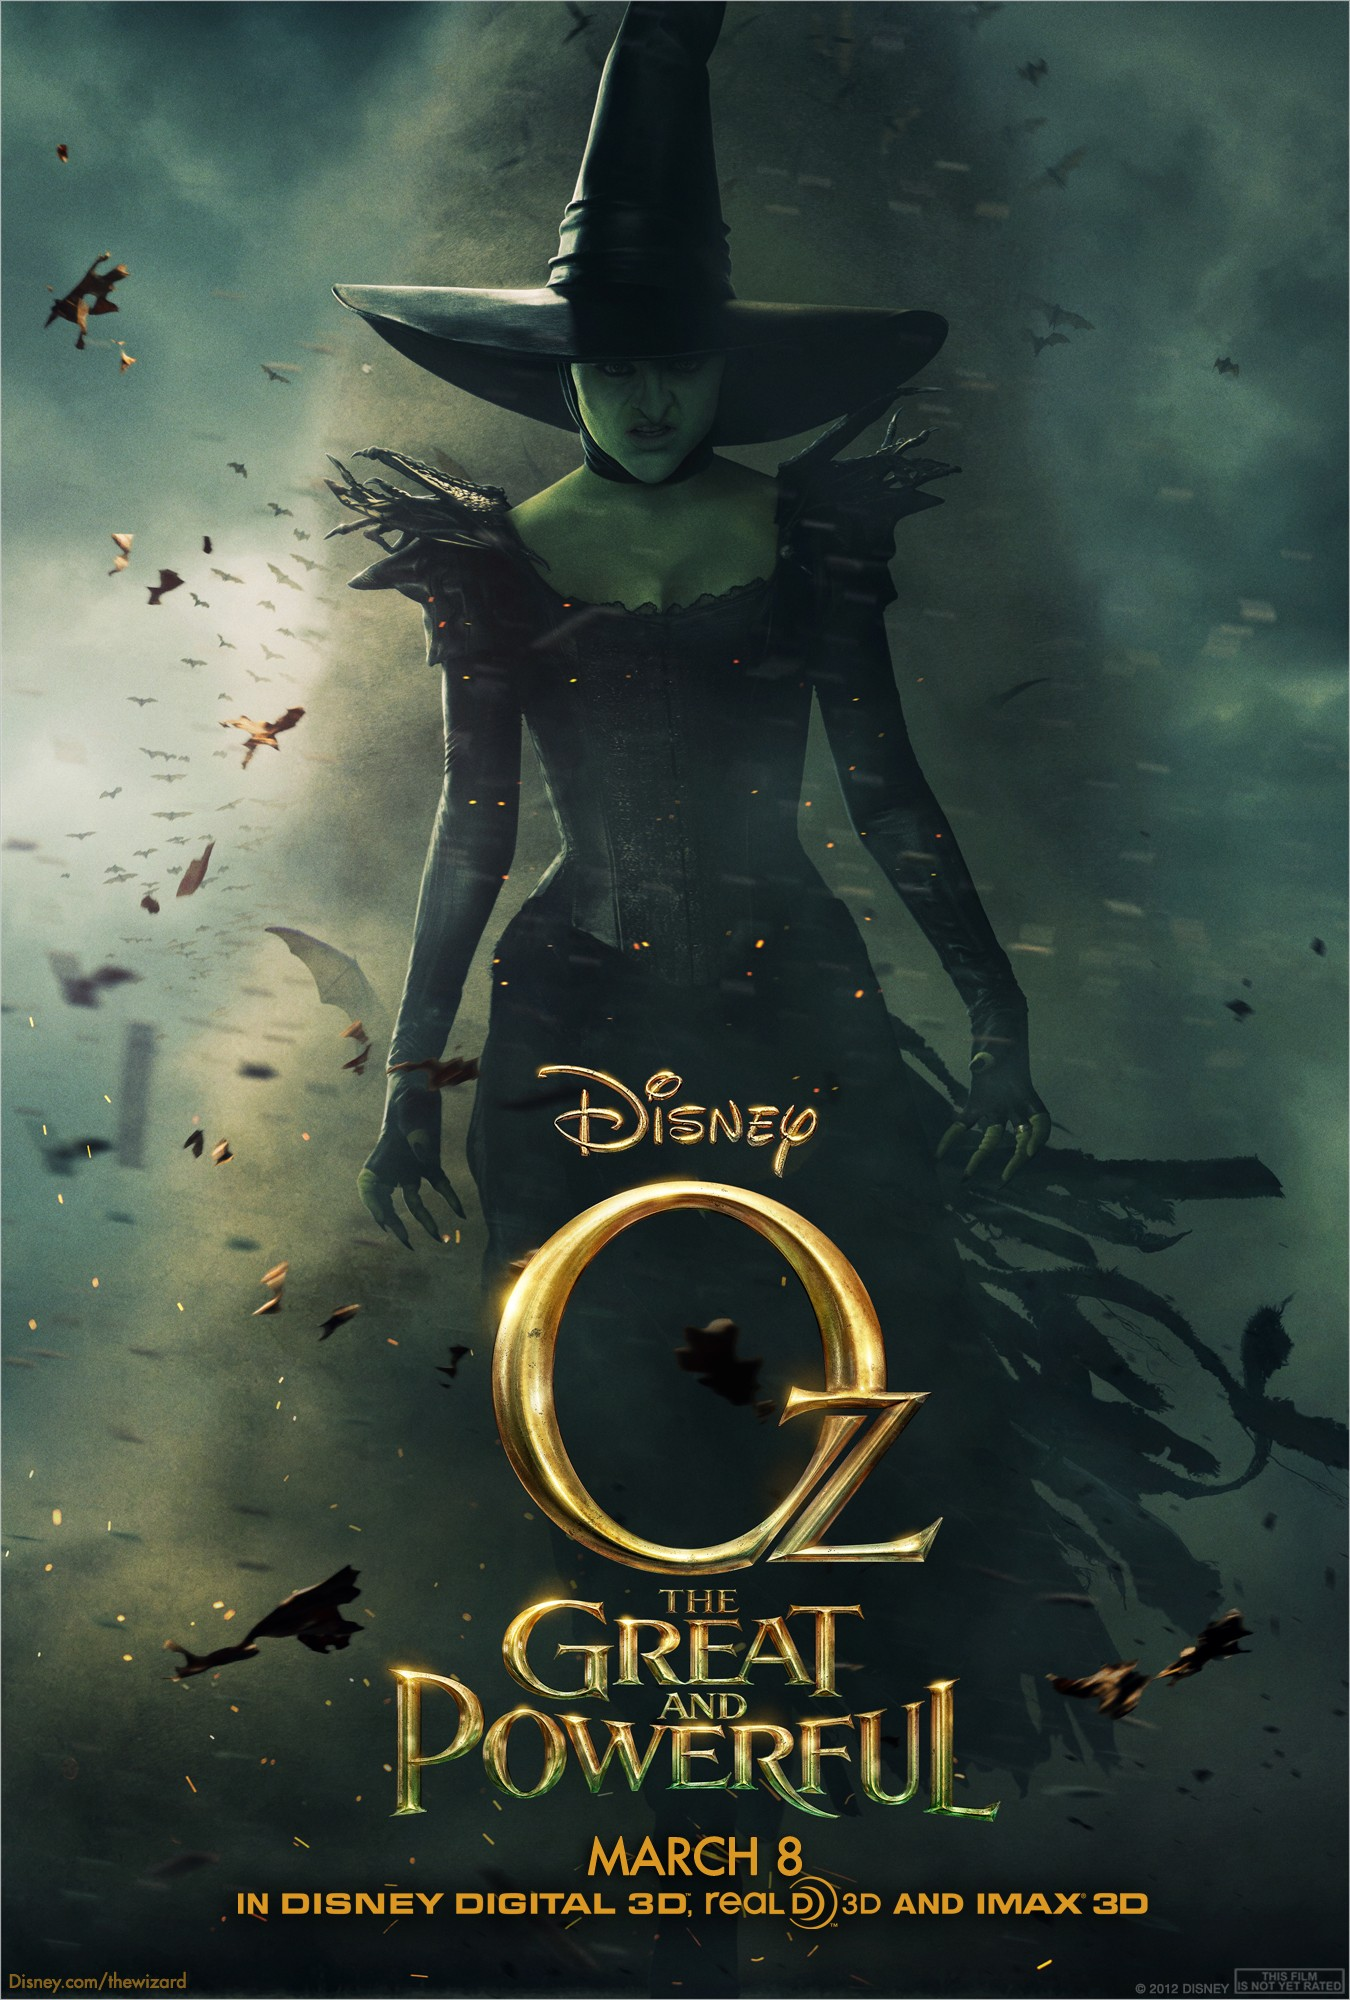 Oz The Great and Powerful - Poster - 003